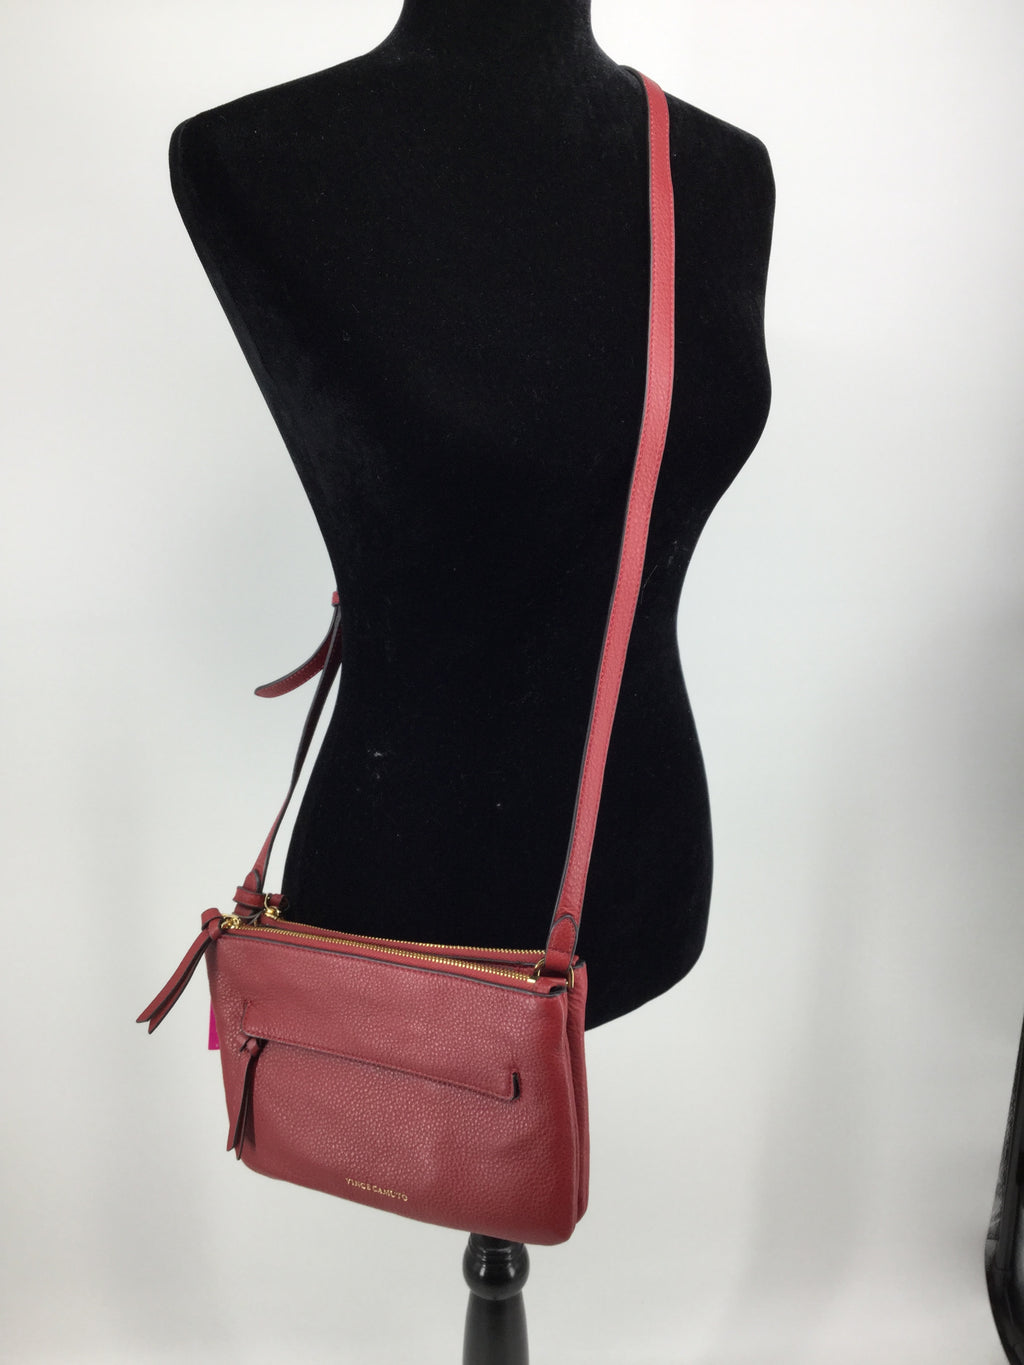 VINCE CAMUTO CROSSBODY SIZE:SMALL